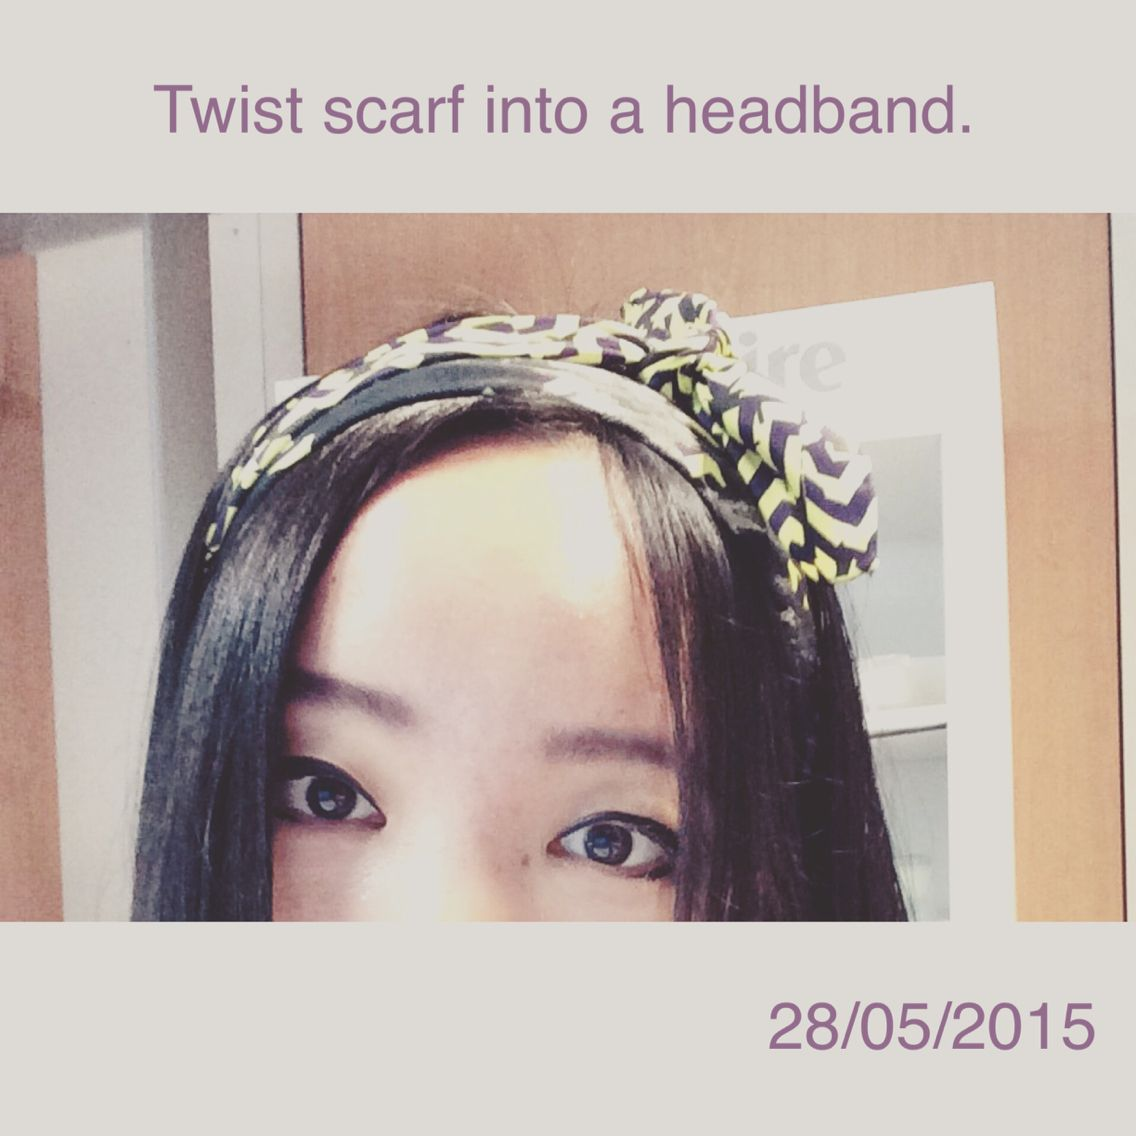 twist scarf into a headband